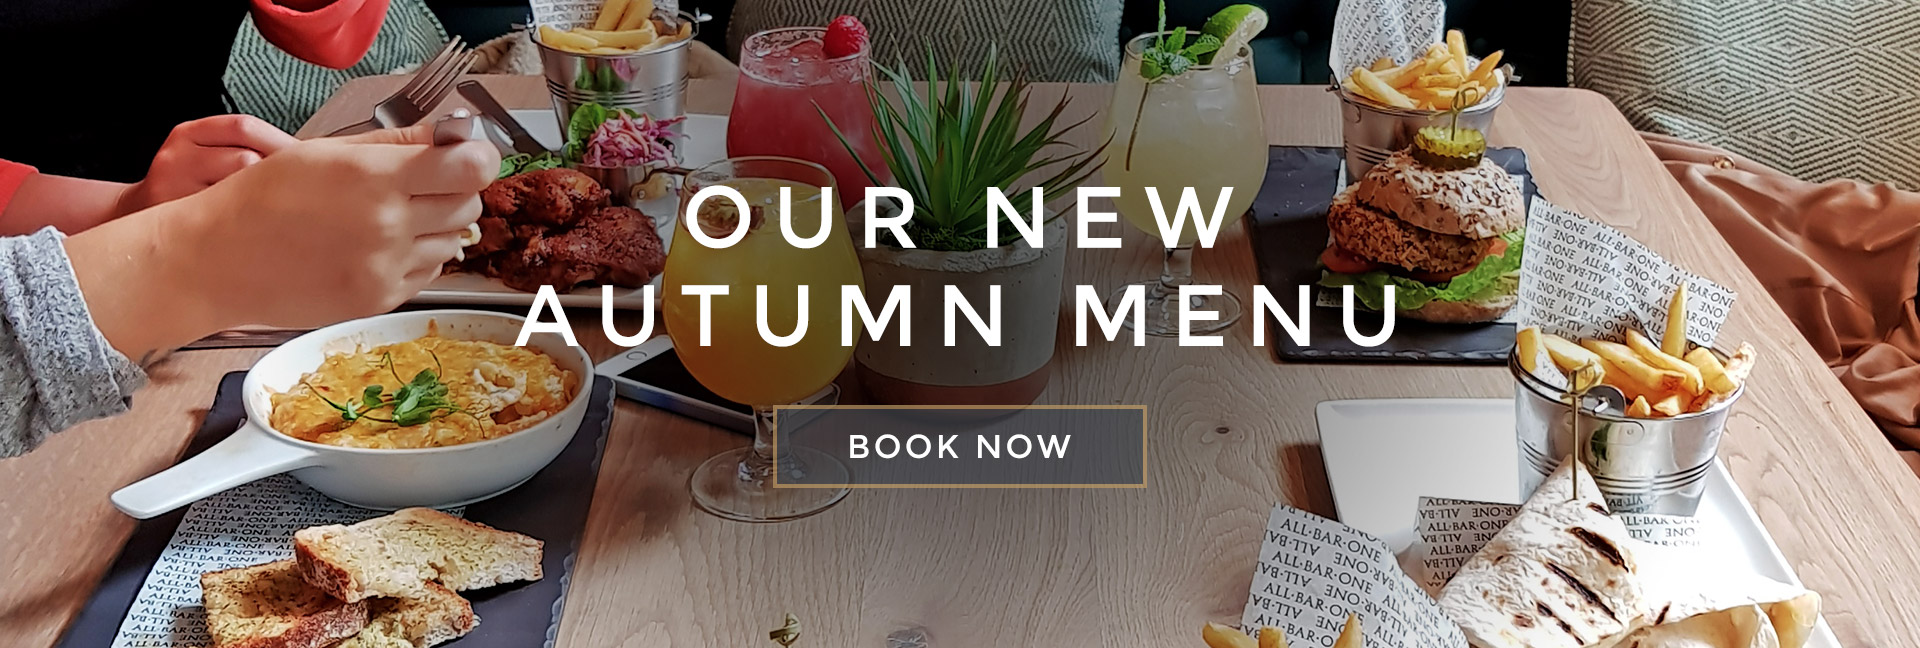 Our new Autumn menu at All Bar One York - Book now